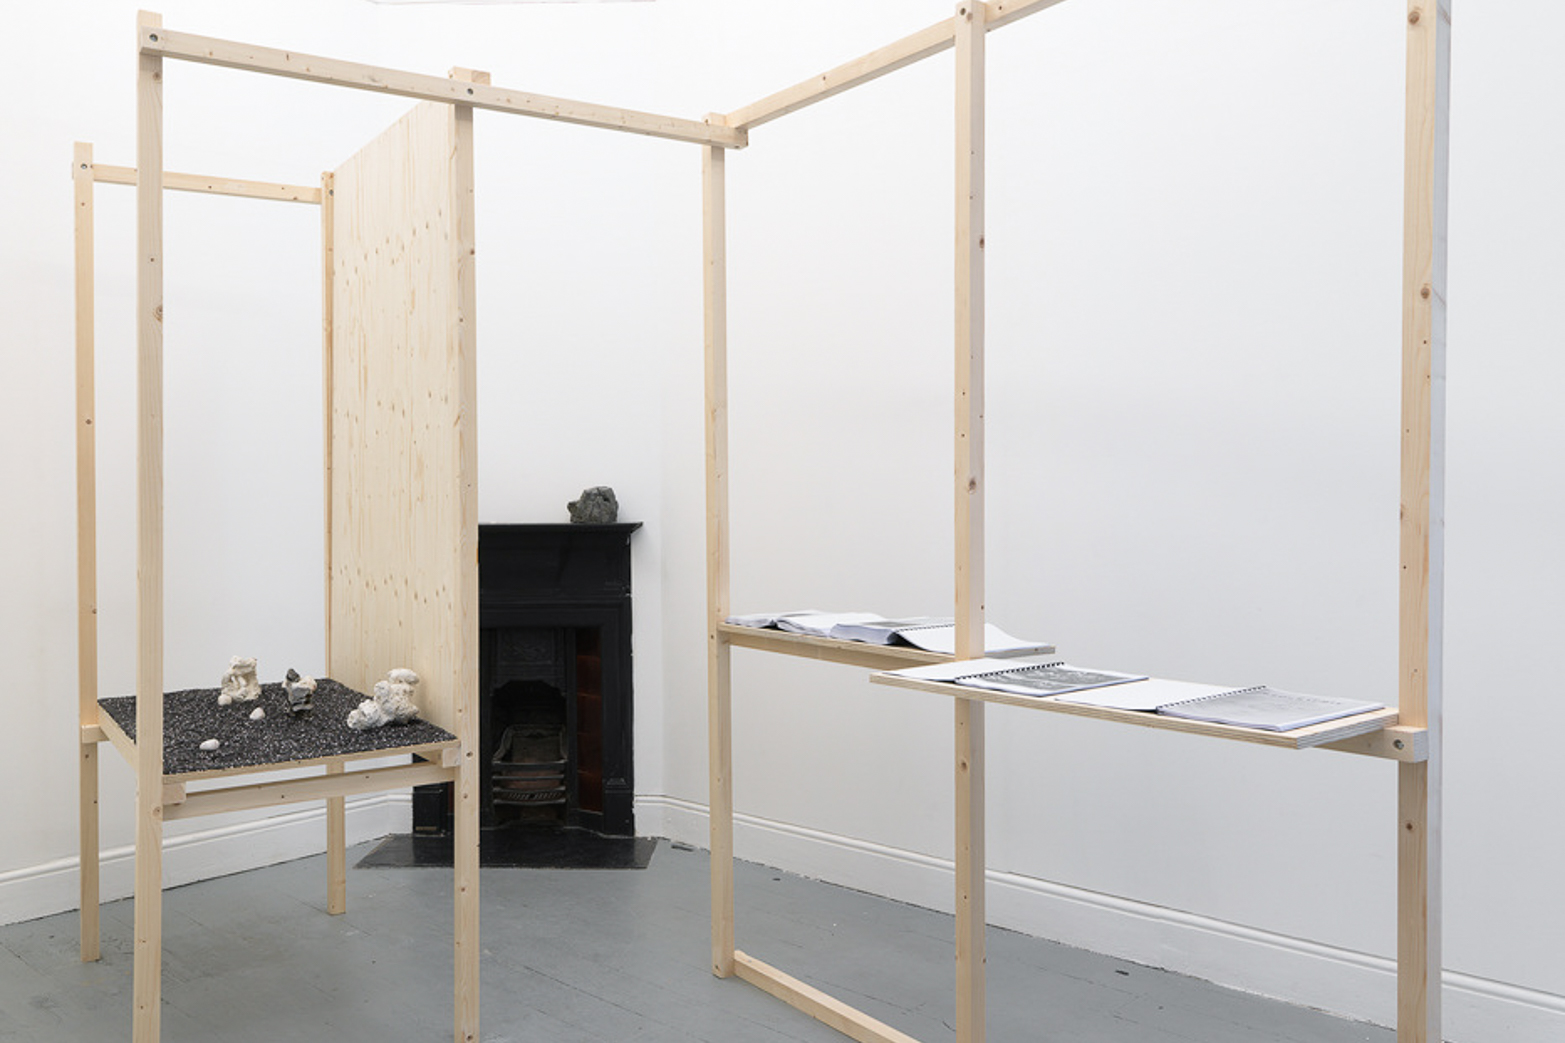 Timothy Ivison and Julia Tcharfas, The Conquest of Gravity as Such. Tenderpixel.